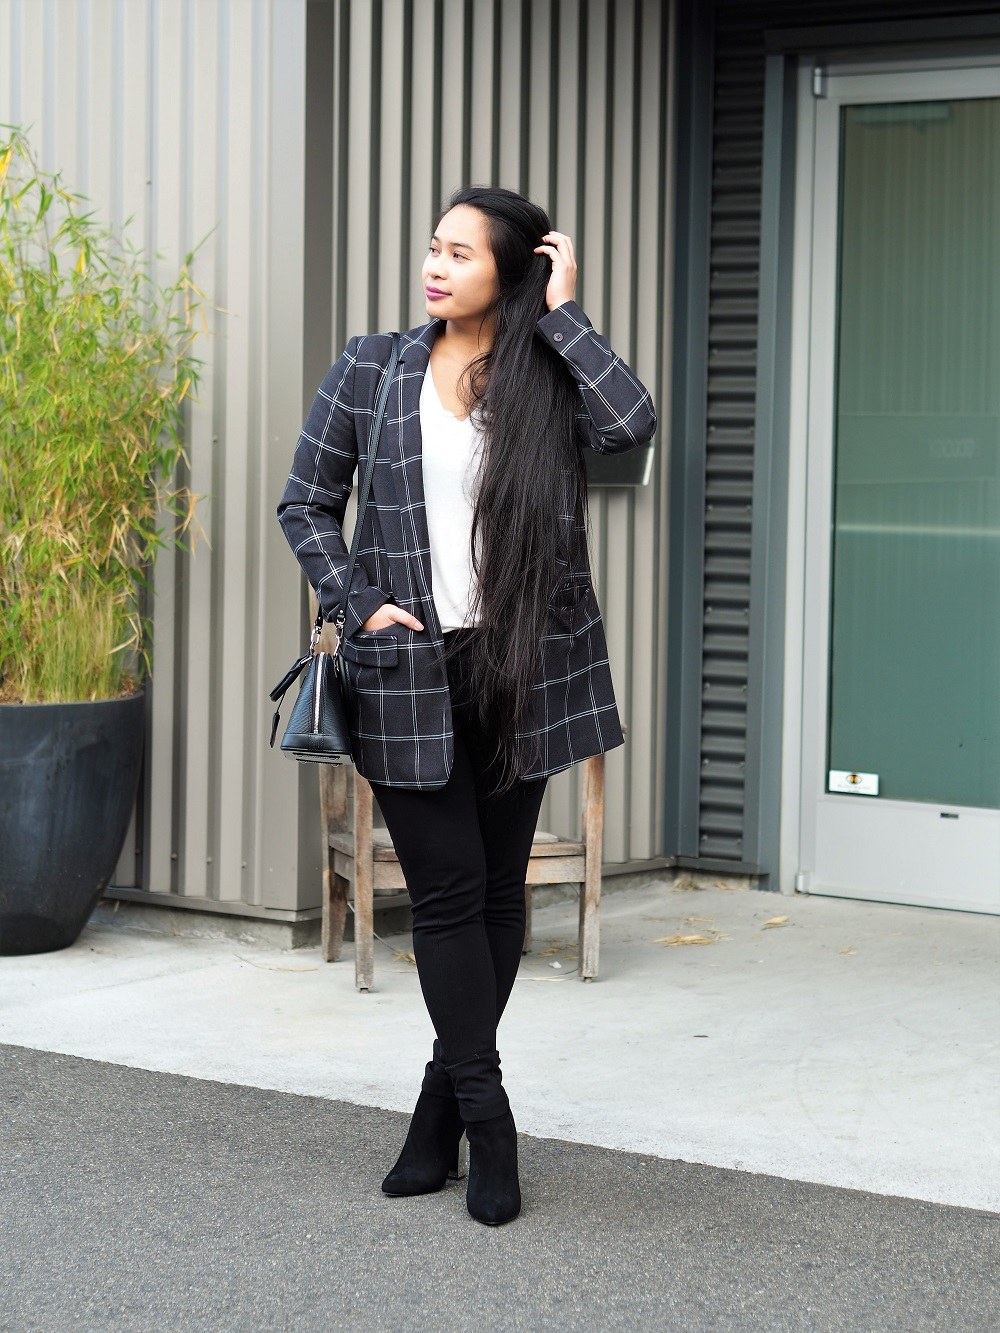 seattle fashion outfit nordstrom rack alma bb louis vuitton lulus